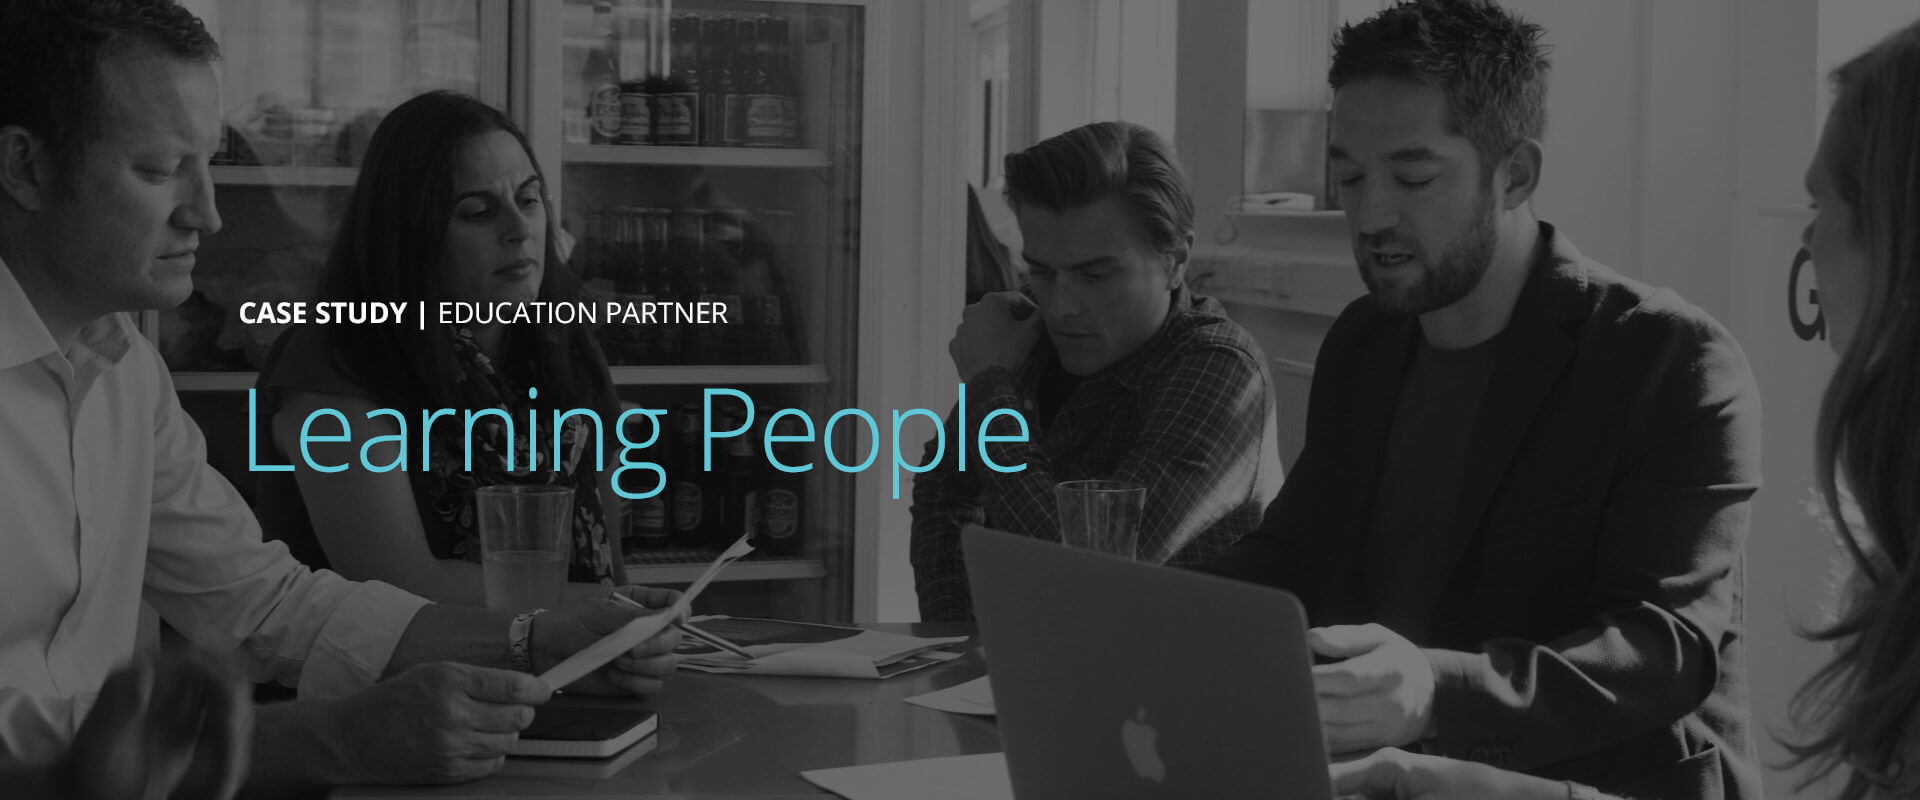 Case Study - Learning People | Education Partner